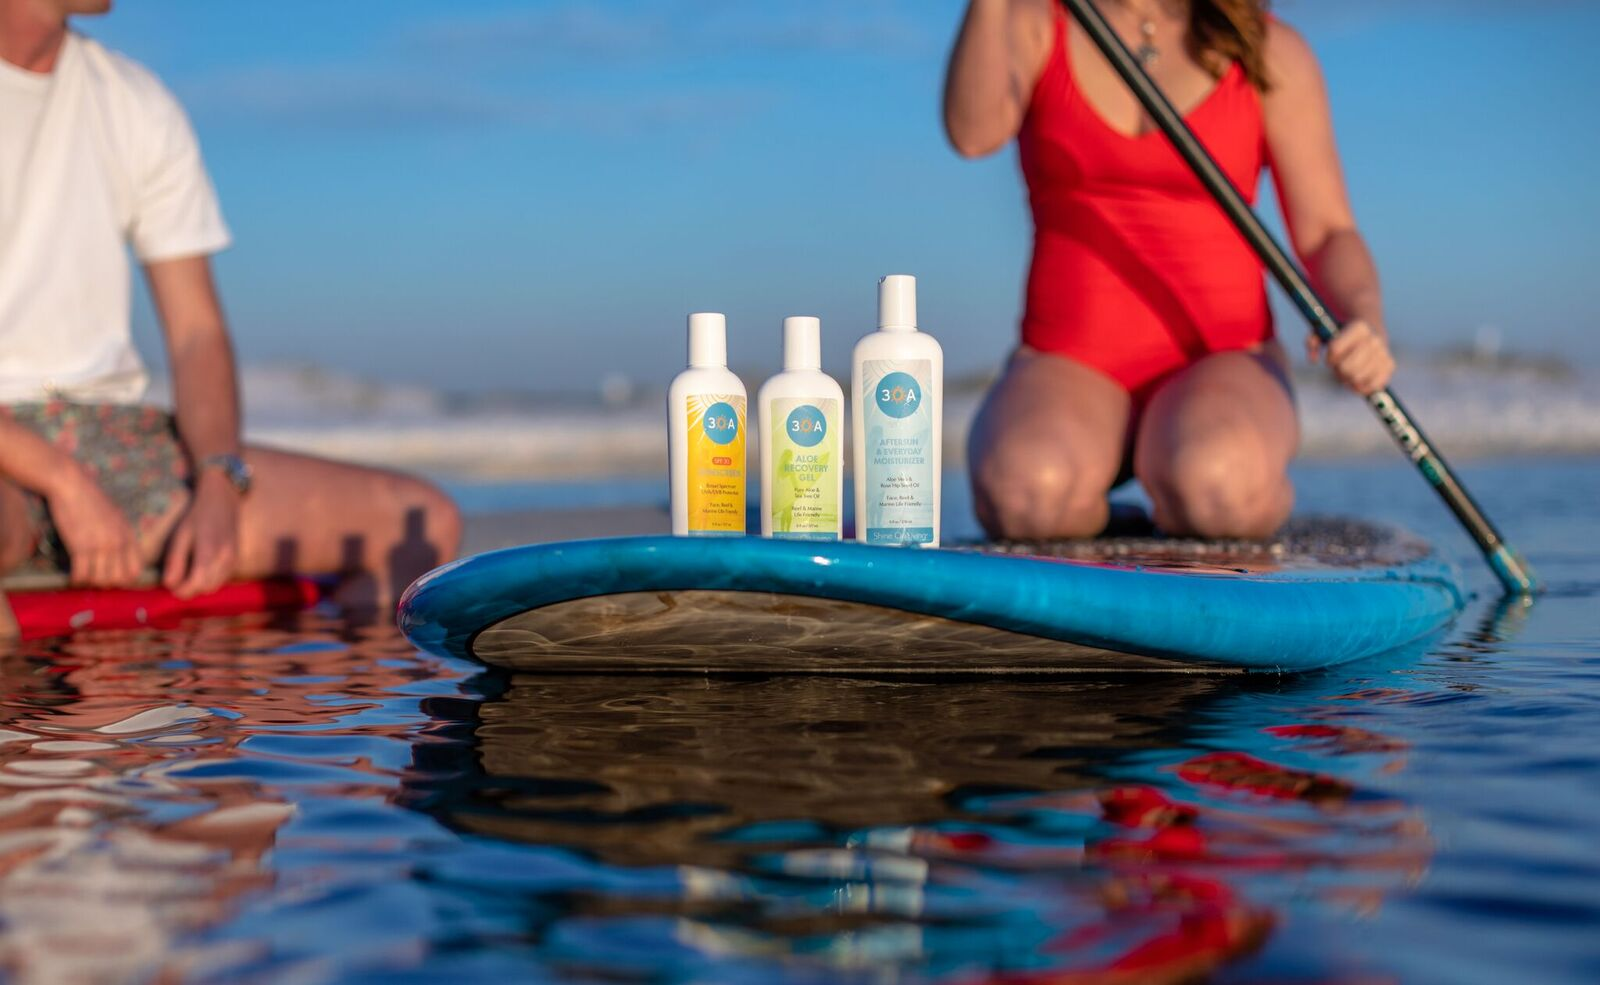 Shine On Living and 30A Launch Sales of Eco-Friendly 30A® Sun Care Products on National Sunscreen Day